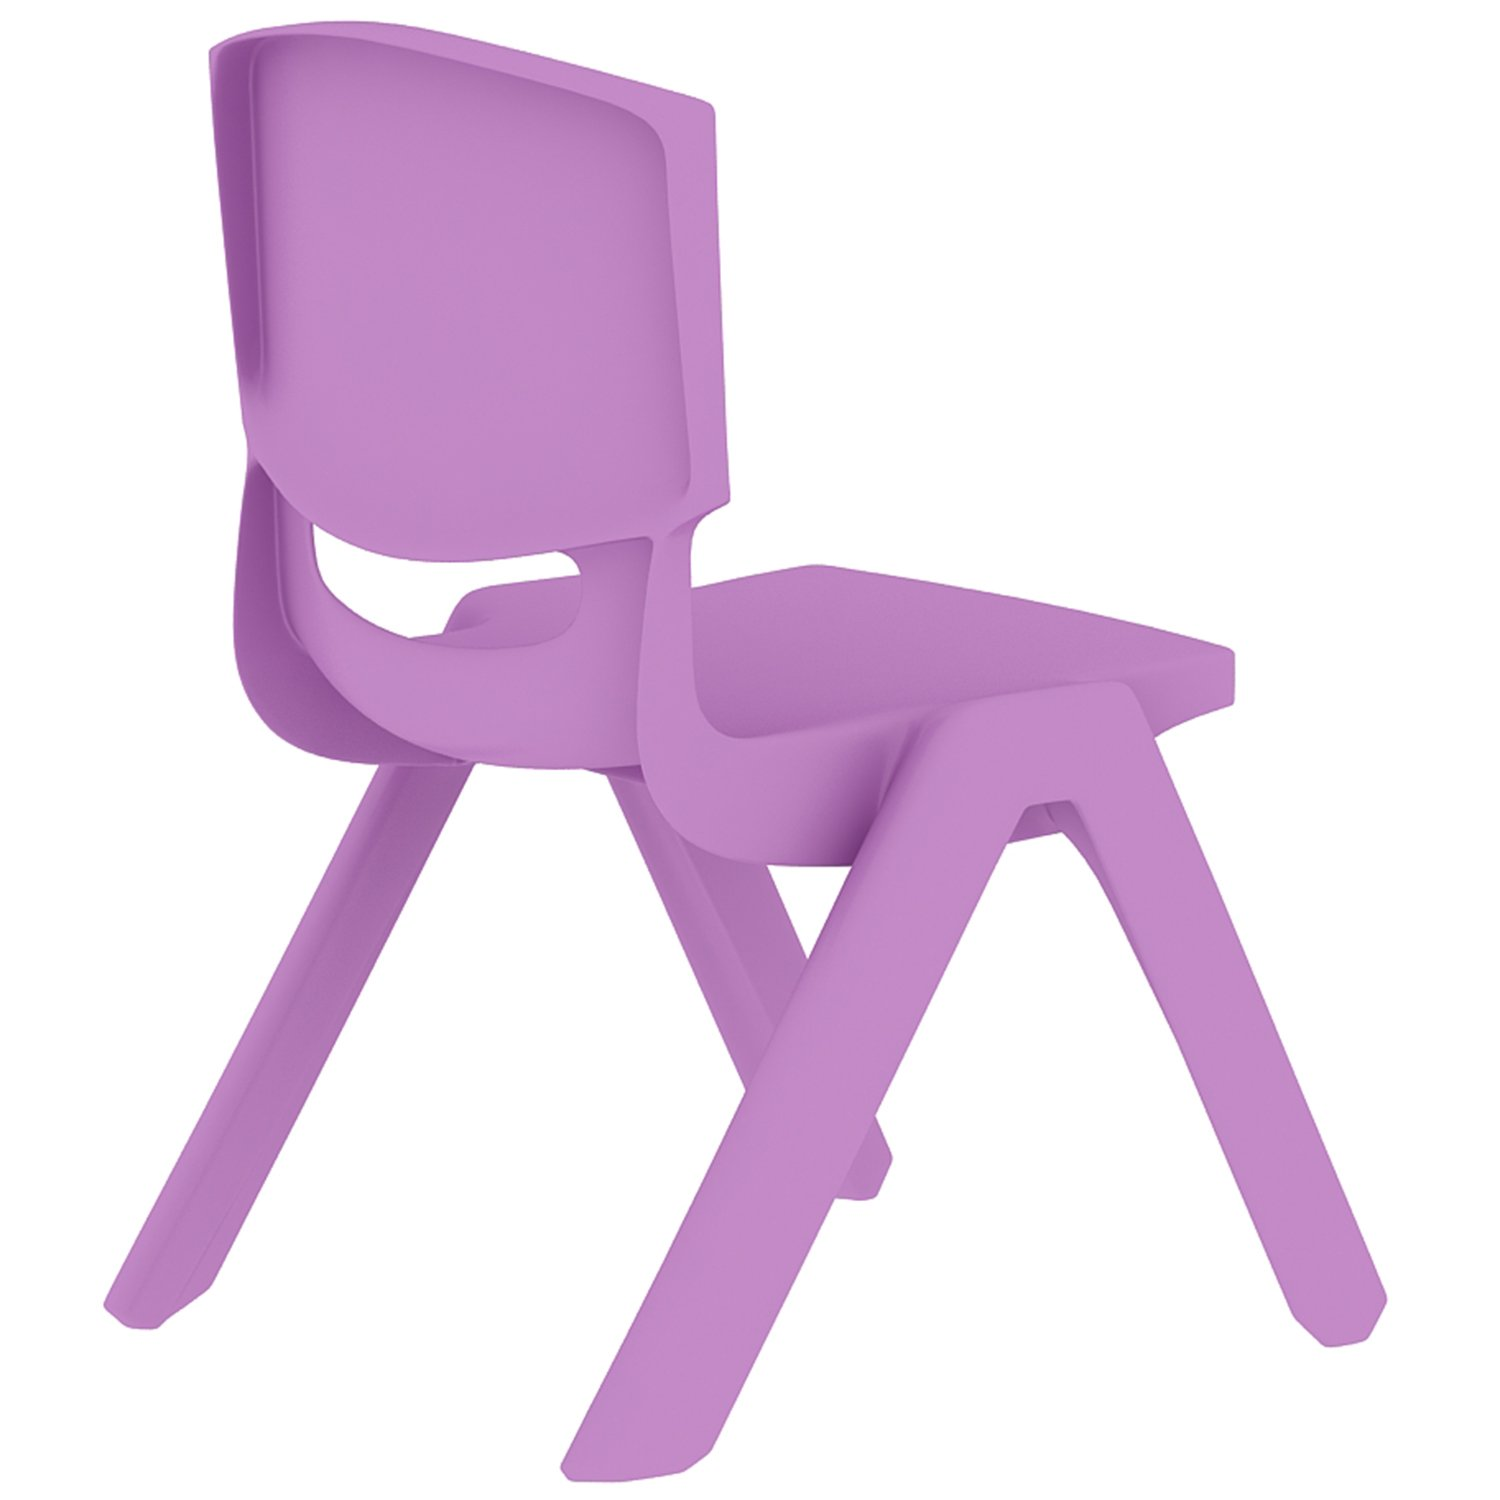 2xhome - Set of Four (4) - Purple - Kids Size Plastic Side Chair 10'' Seat Height Purple Childs Chair Childrens Room School Chairs No Arm Arms Armless Molded Plastic Seat Stackable by 2xhome (Image #4)